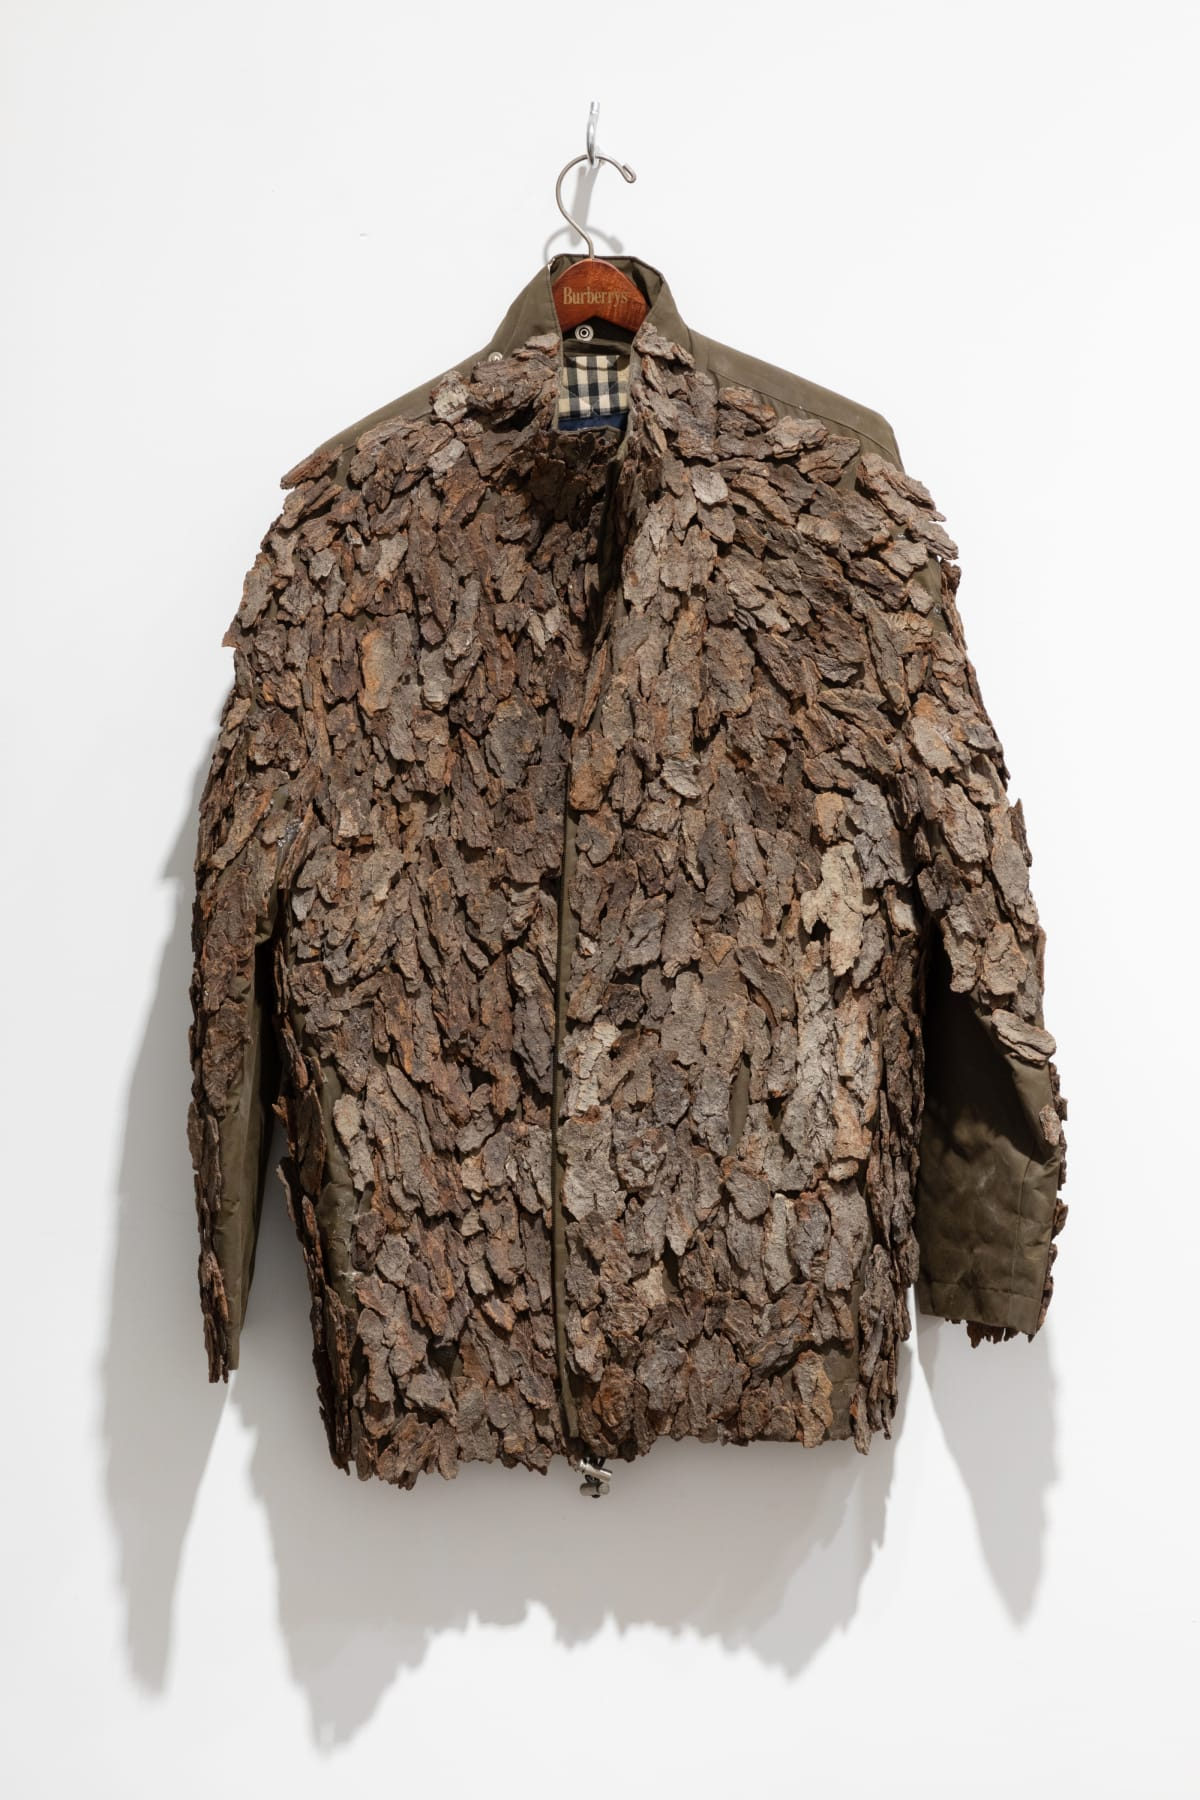 Hugh Hayden Armor, 2014 Cherry bark on Burberry coat 32 x 12 x 36 in 81.3 x 30.5 x 91.4 cm